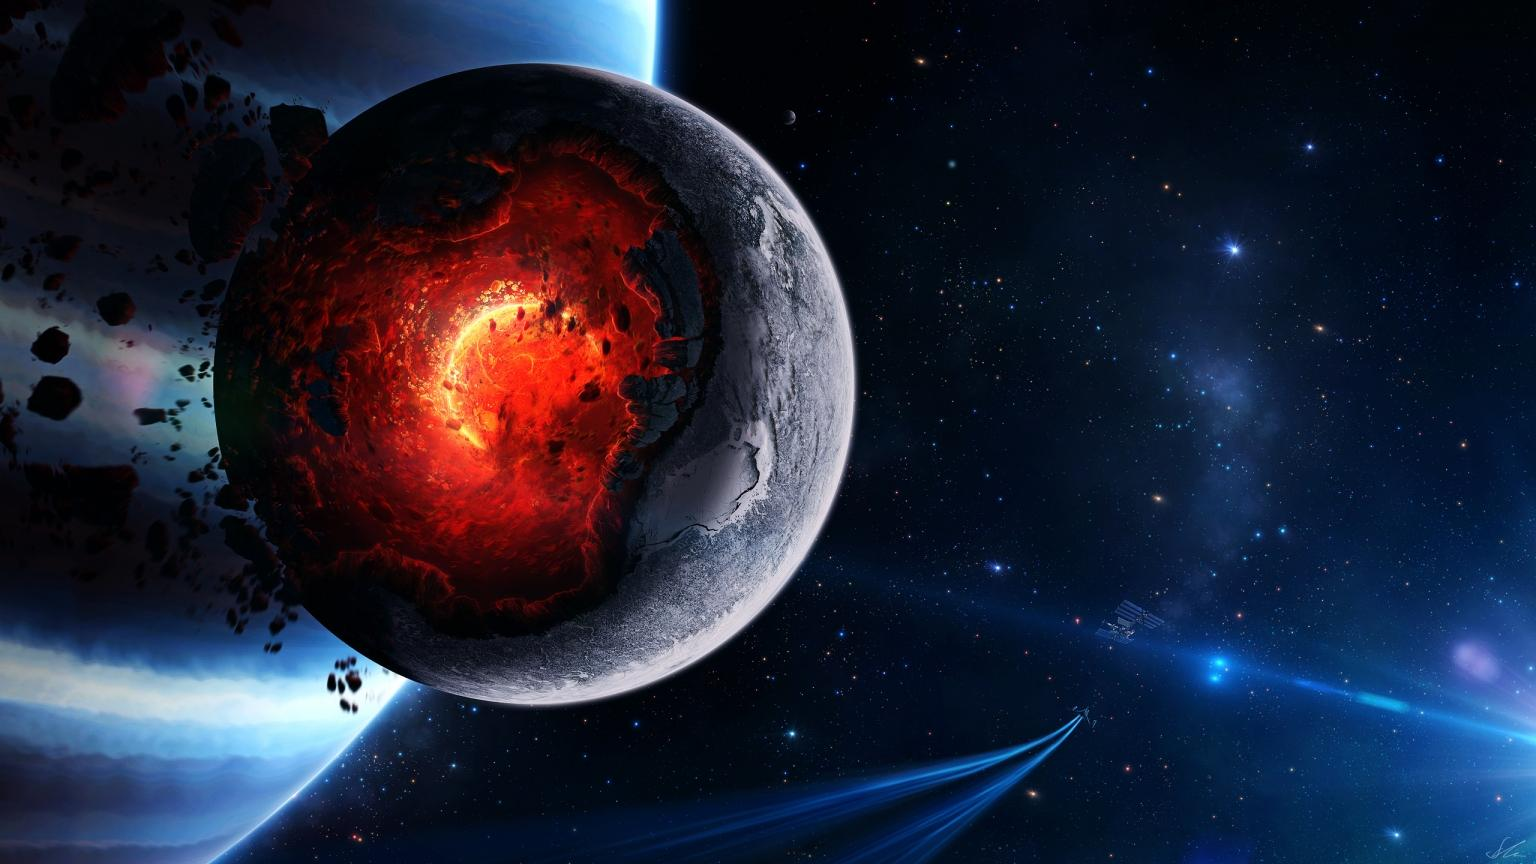 Space Planet Disaster 1536 x 864 HDTV Wallpapers